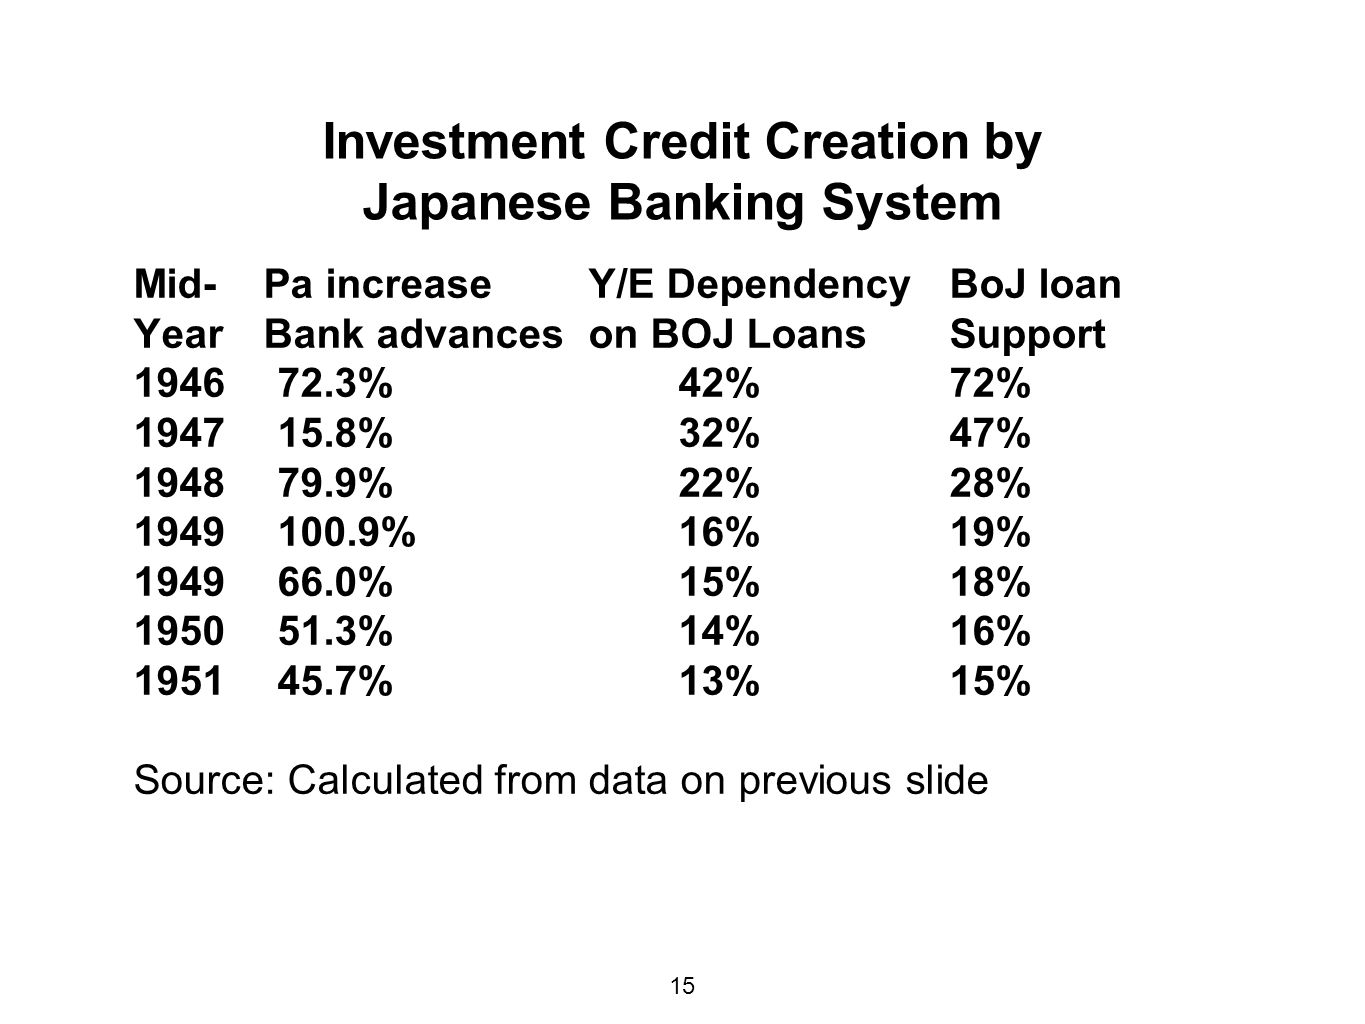 Investment Credit Creation by Japanese Banking System Mid- Pa increase Y/E DependencyBoJ loan Year Bank advances on BOJ LoansSupport % 42%72% % 32%47% % 22%28% % 16%19% % 15%18% % 14%16% % 13%15% Source: Calculated from data on previous slide 15